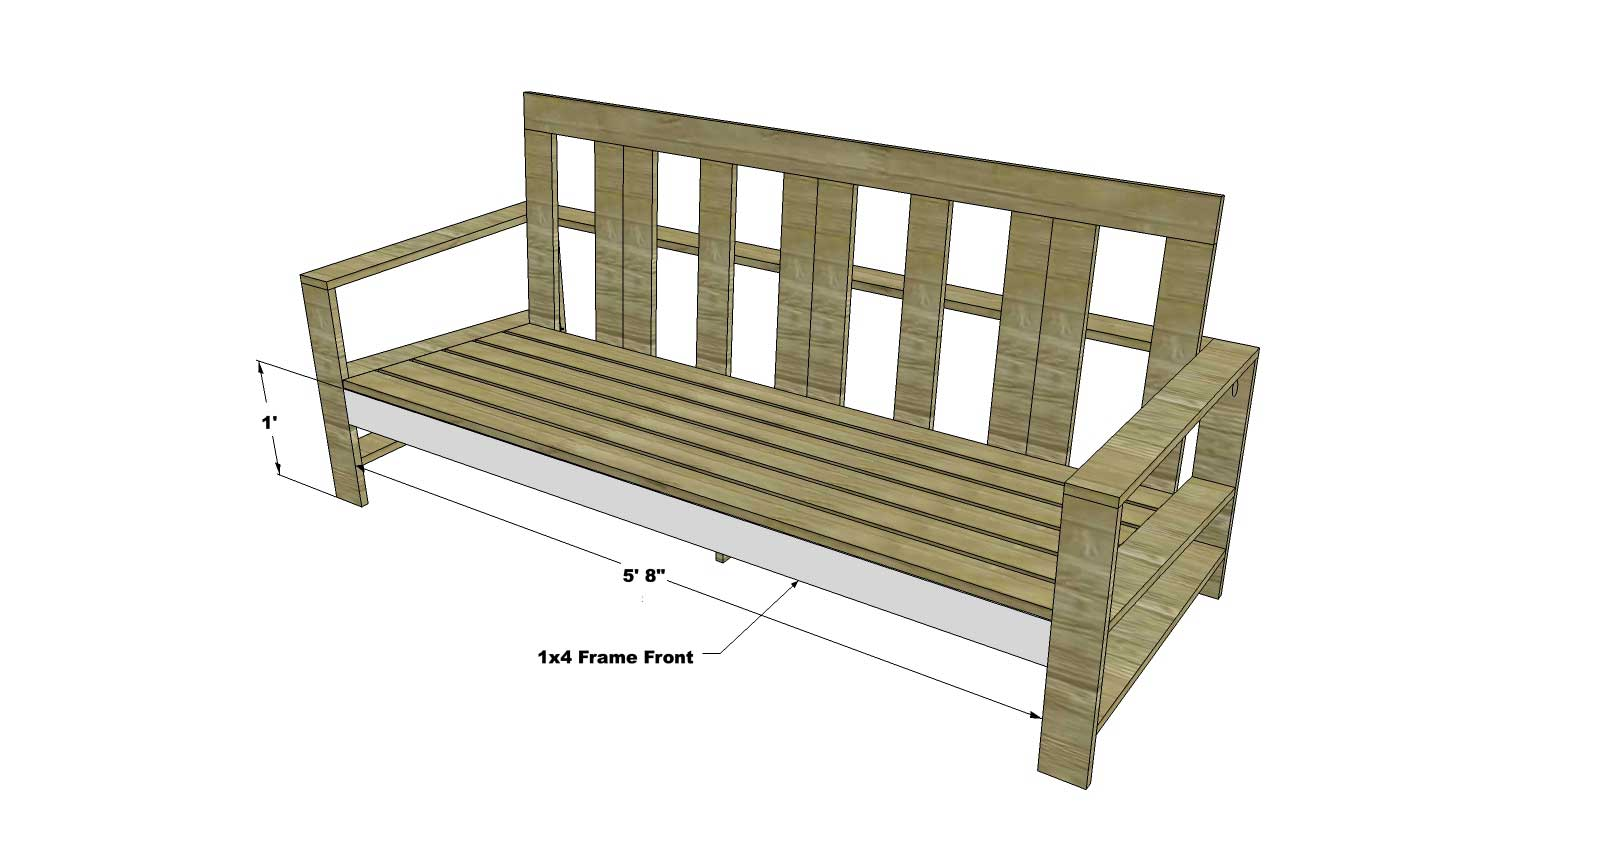 The Design Confidential\u0027s Easy DIY Furniture Plans to Build an Outdoor